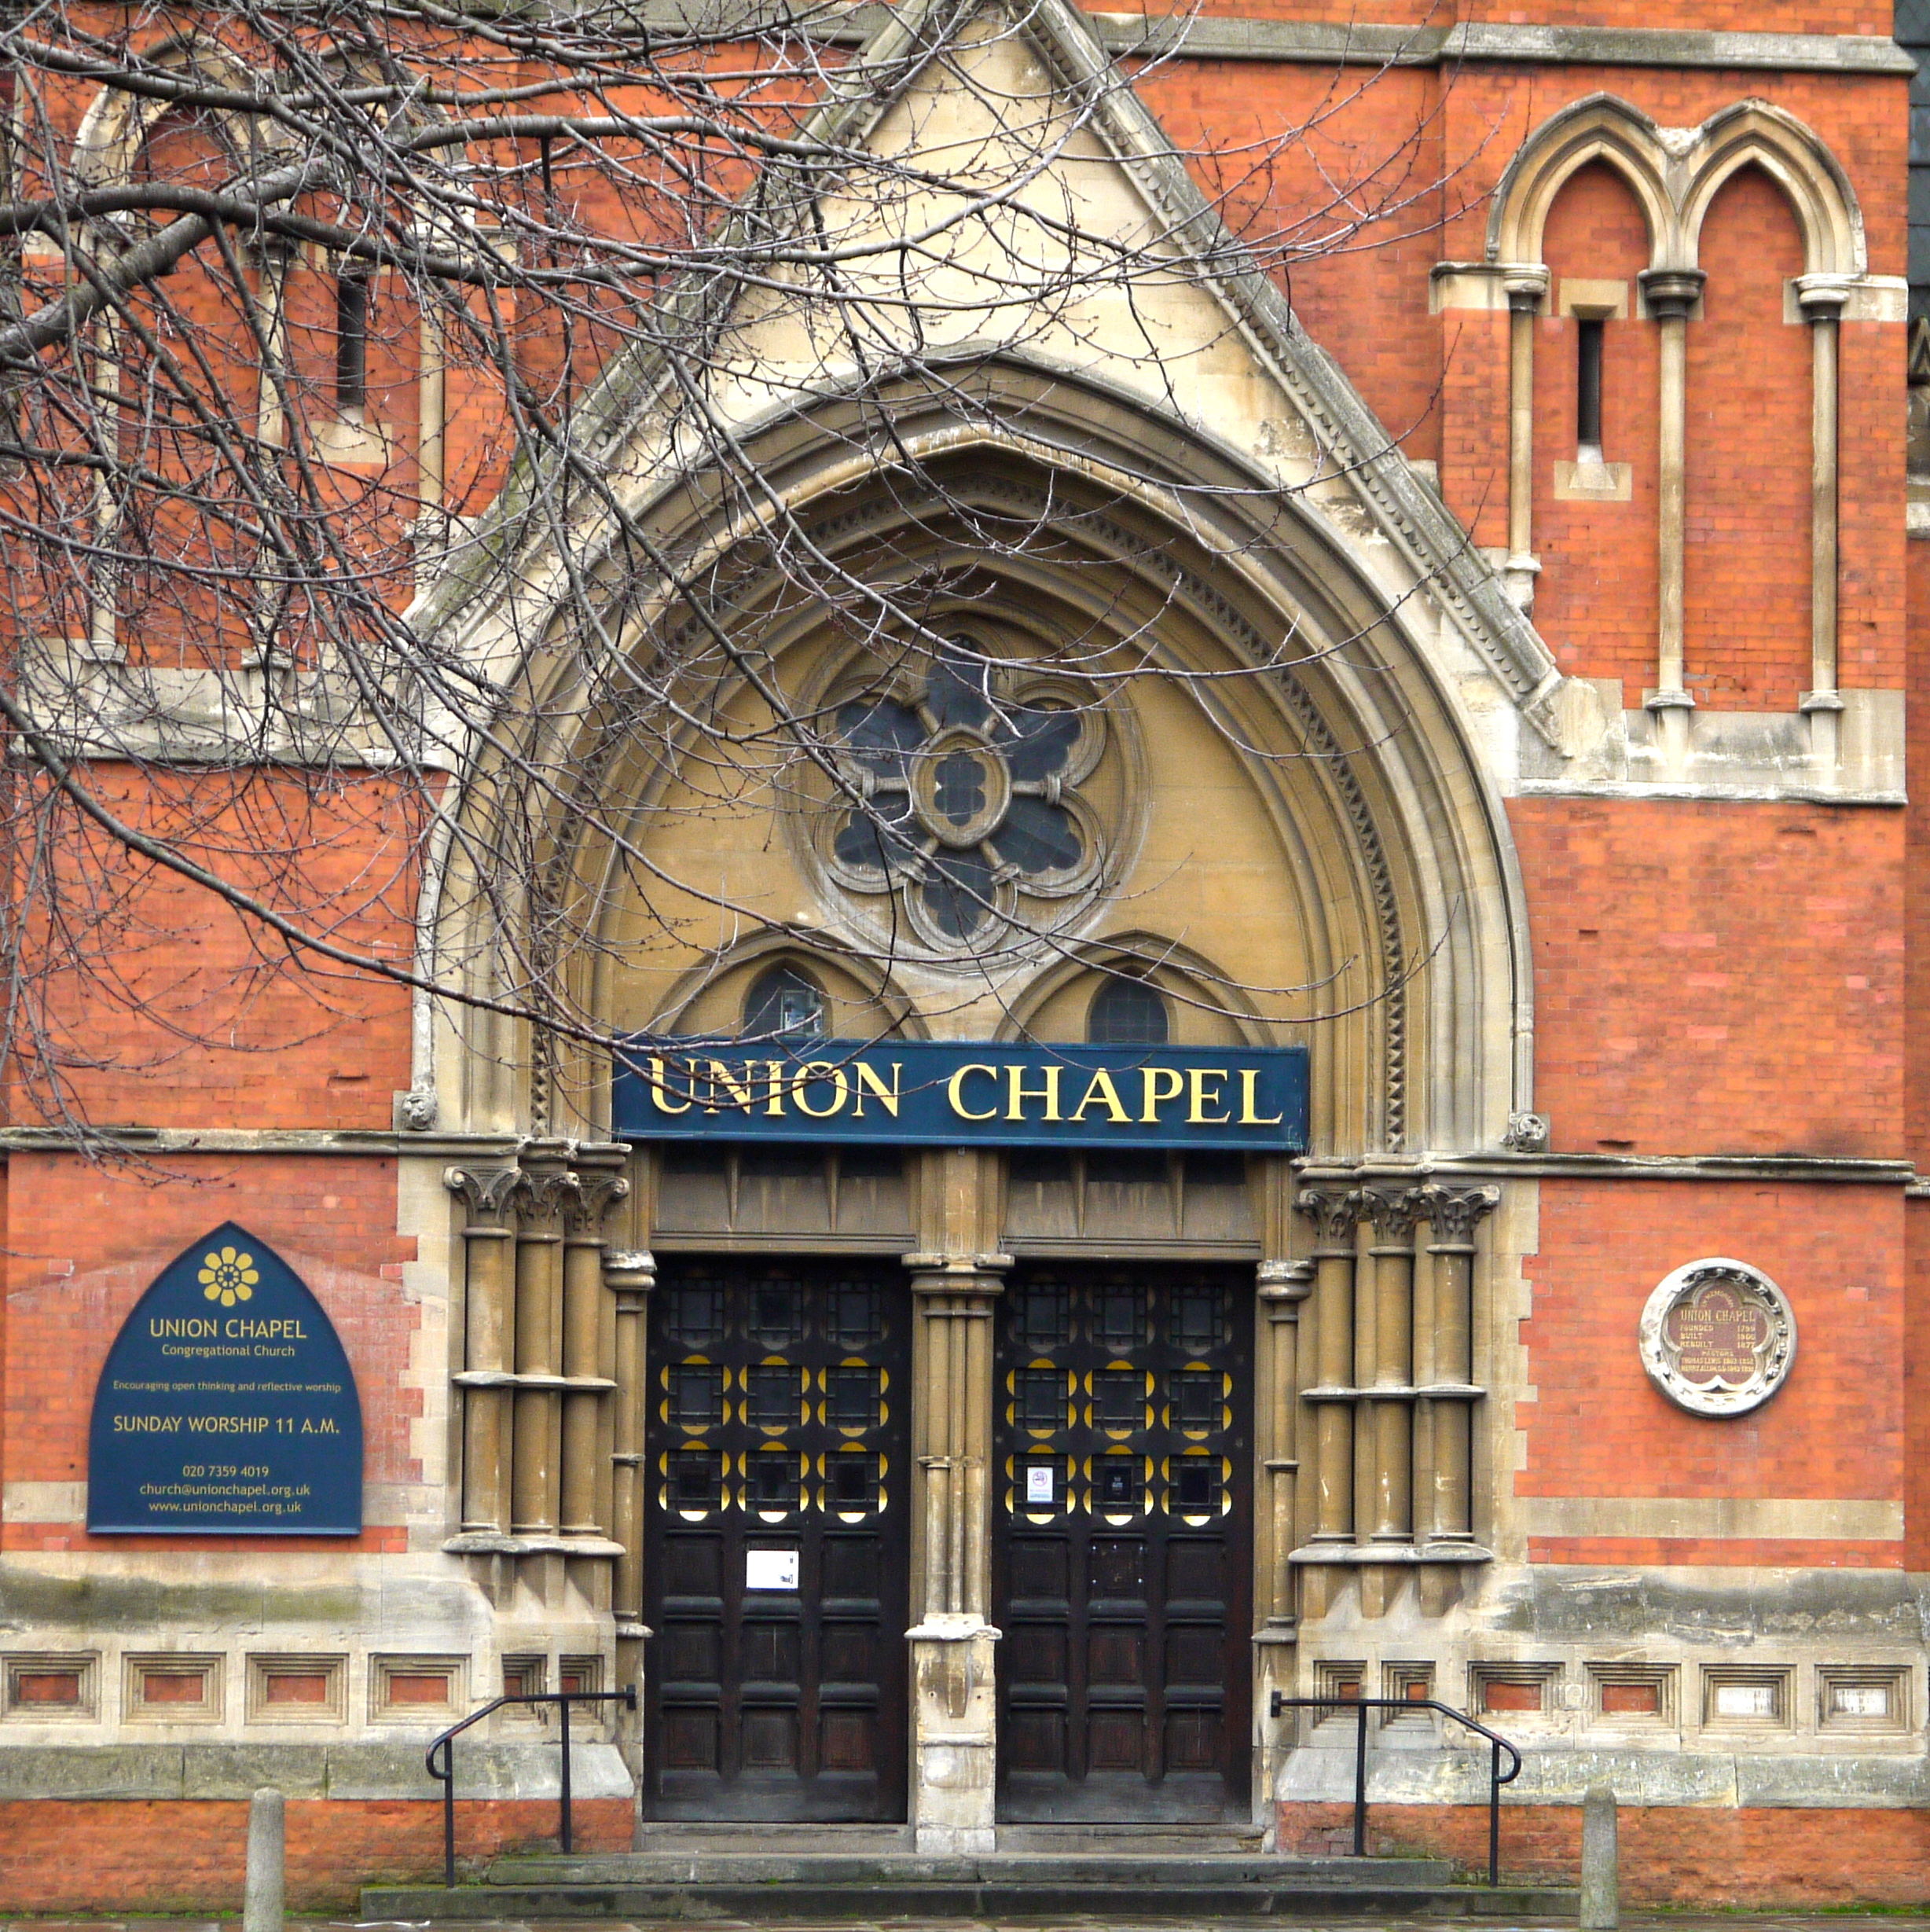 Union Chapel music venue